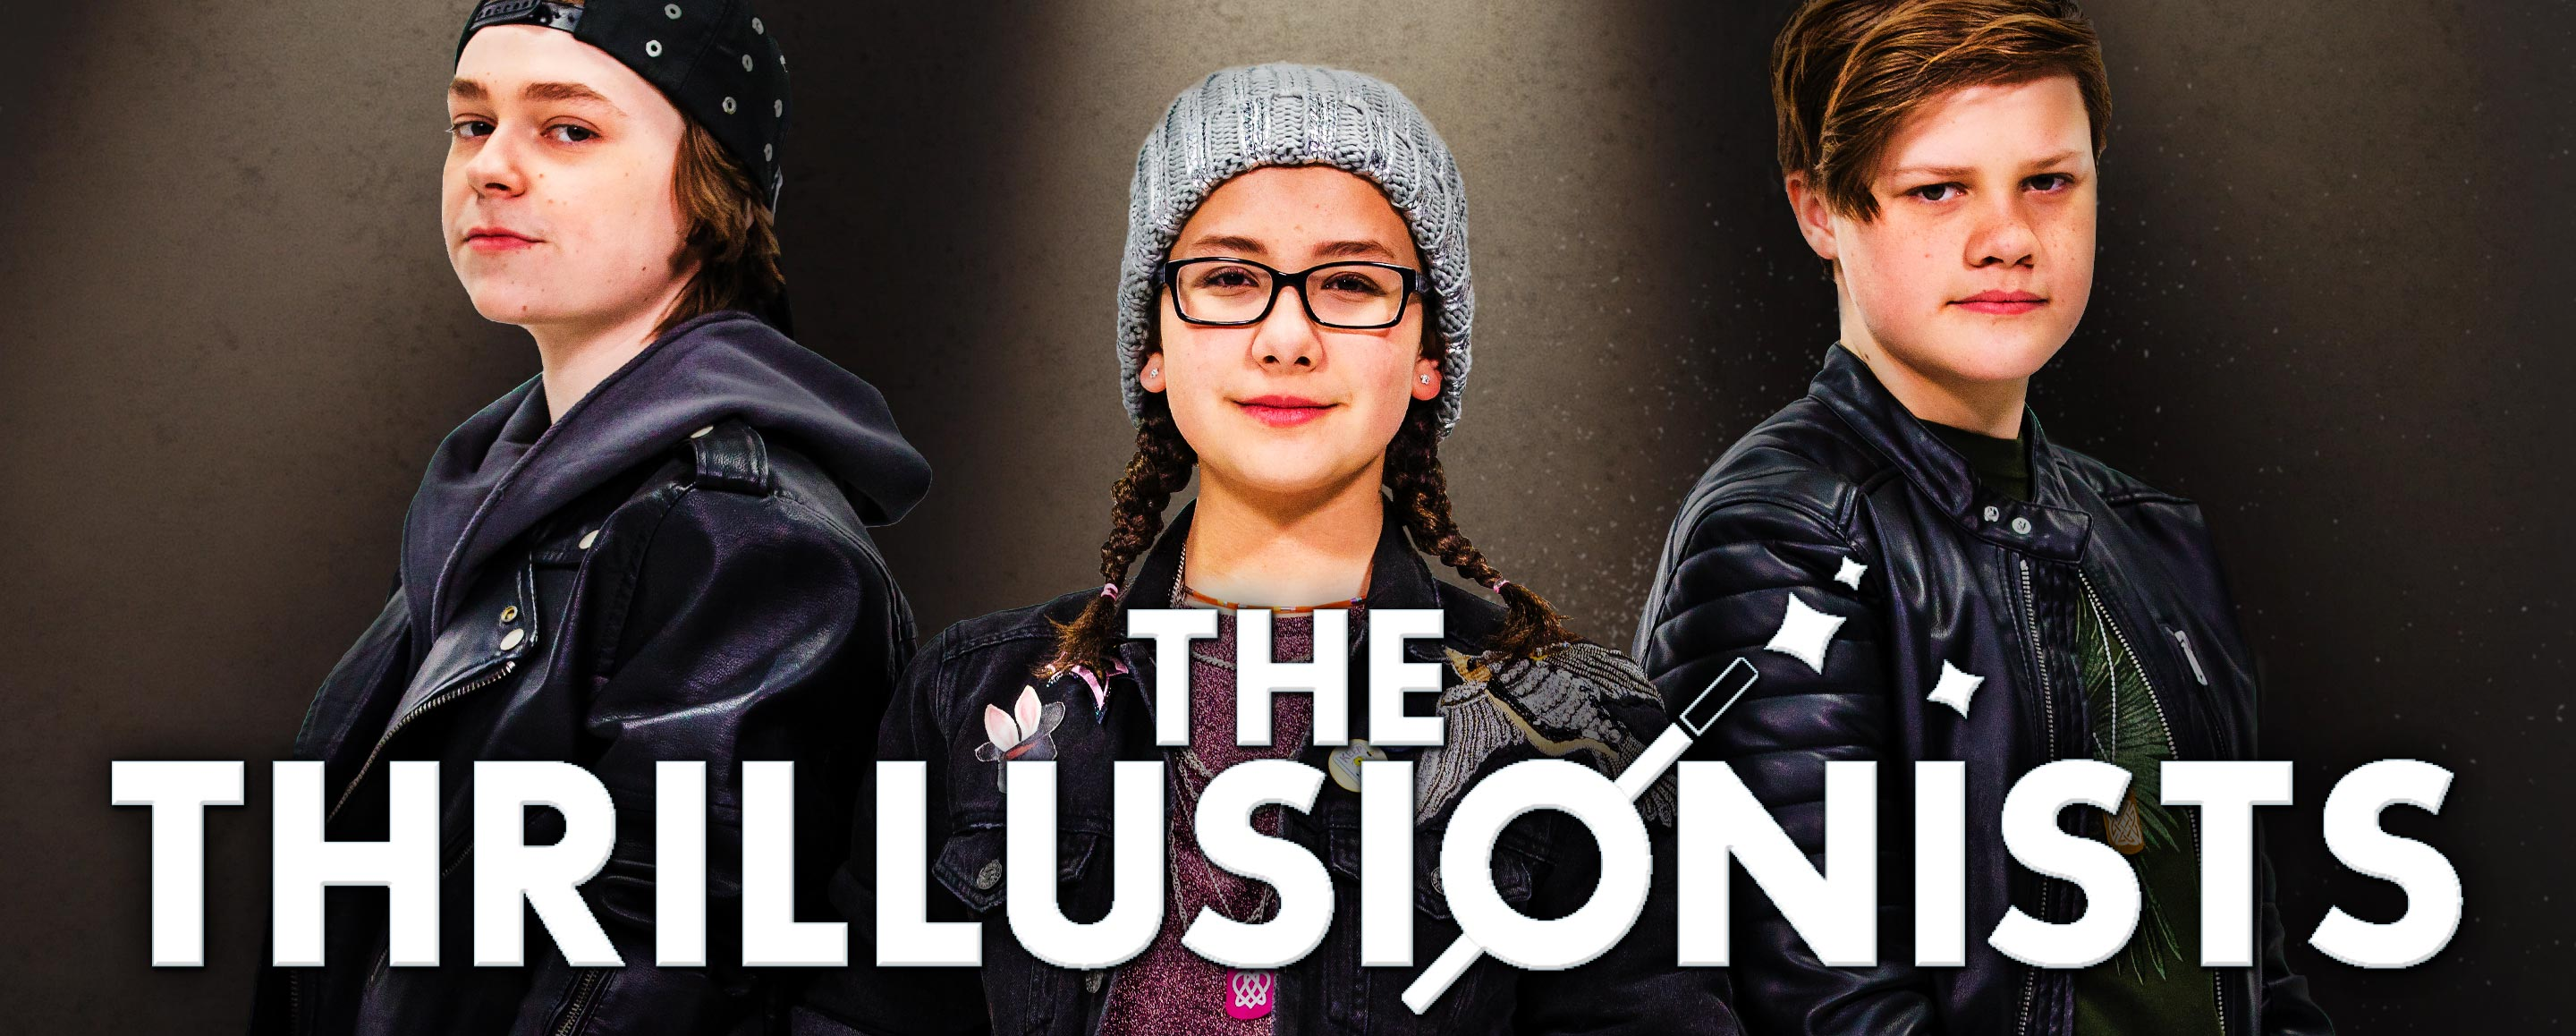 Thrillusionists